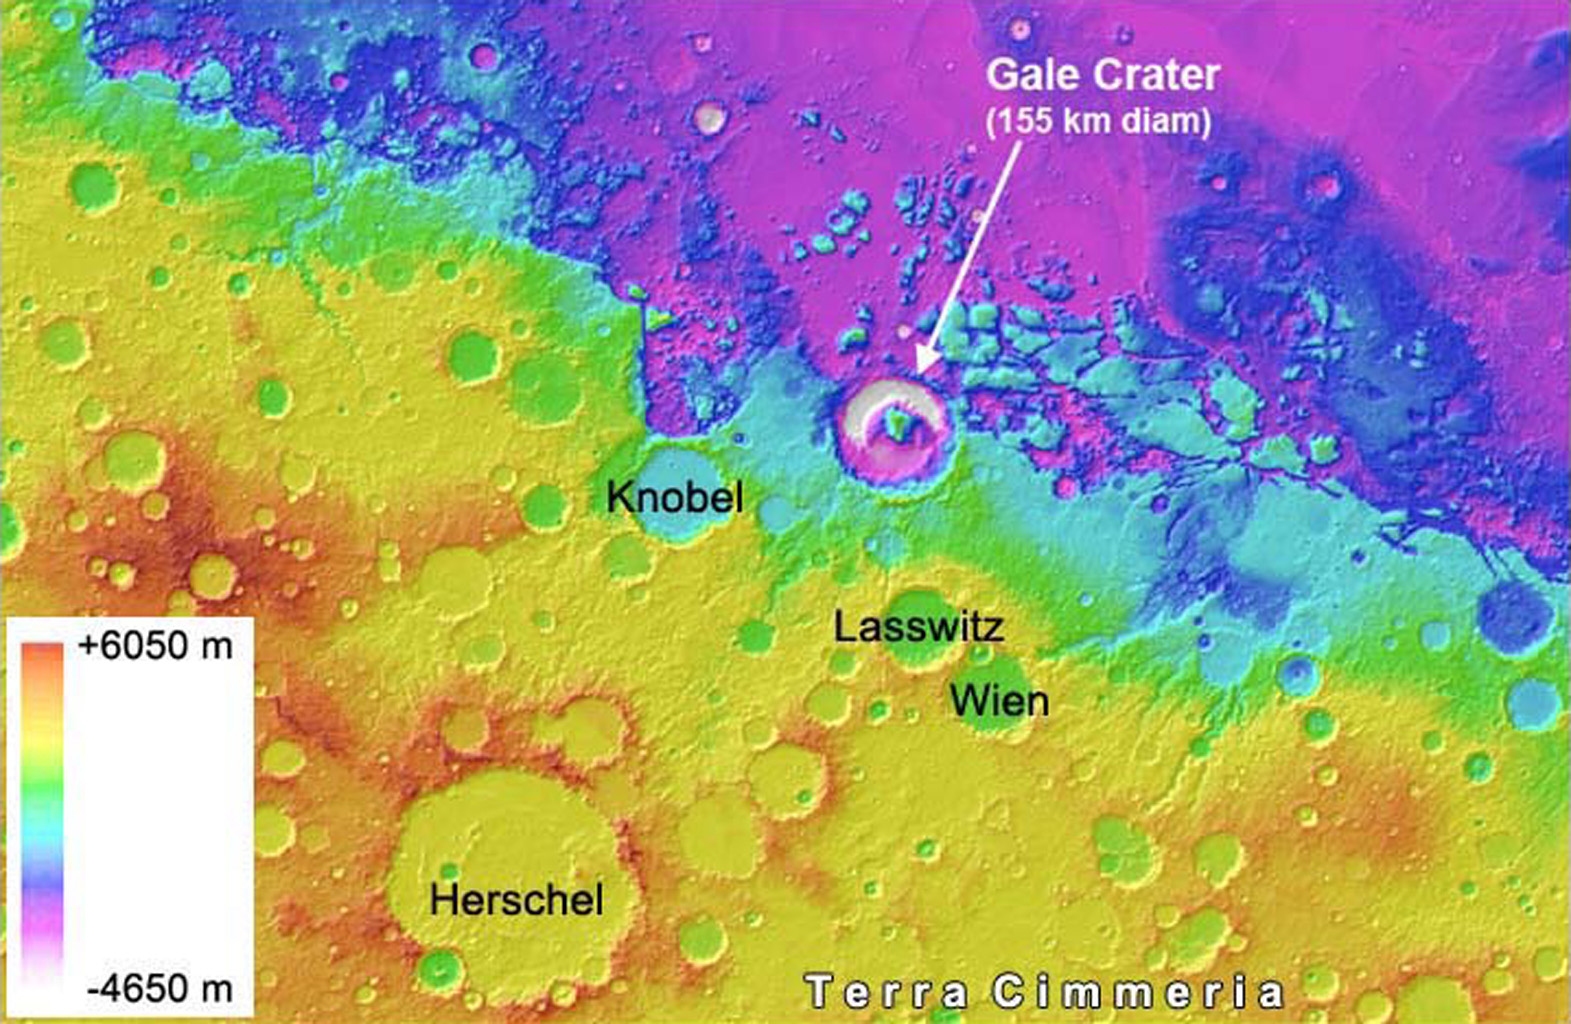 Space Images   Gale Crater is Low on Mars